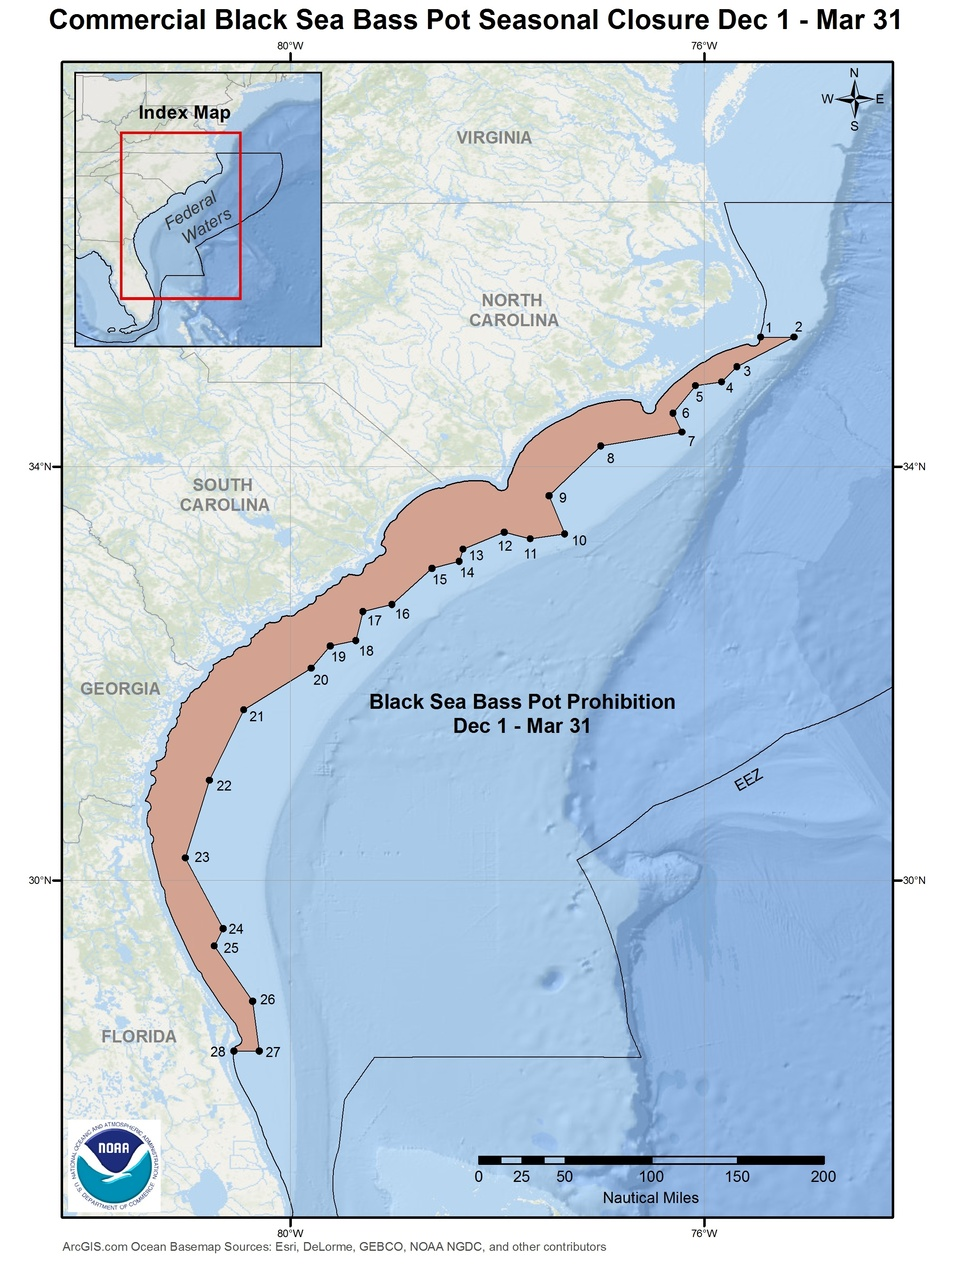 This is a map of the commercial black sea bass pot closure Dec 1-Mar 31 in the South Atlantic Region.